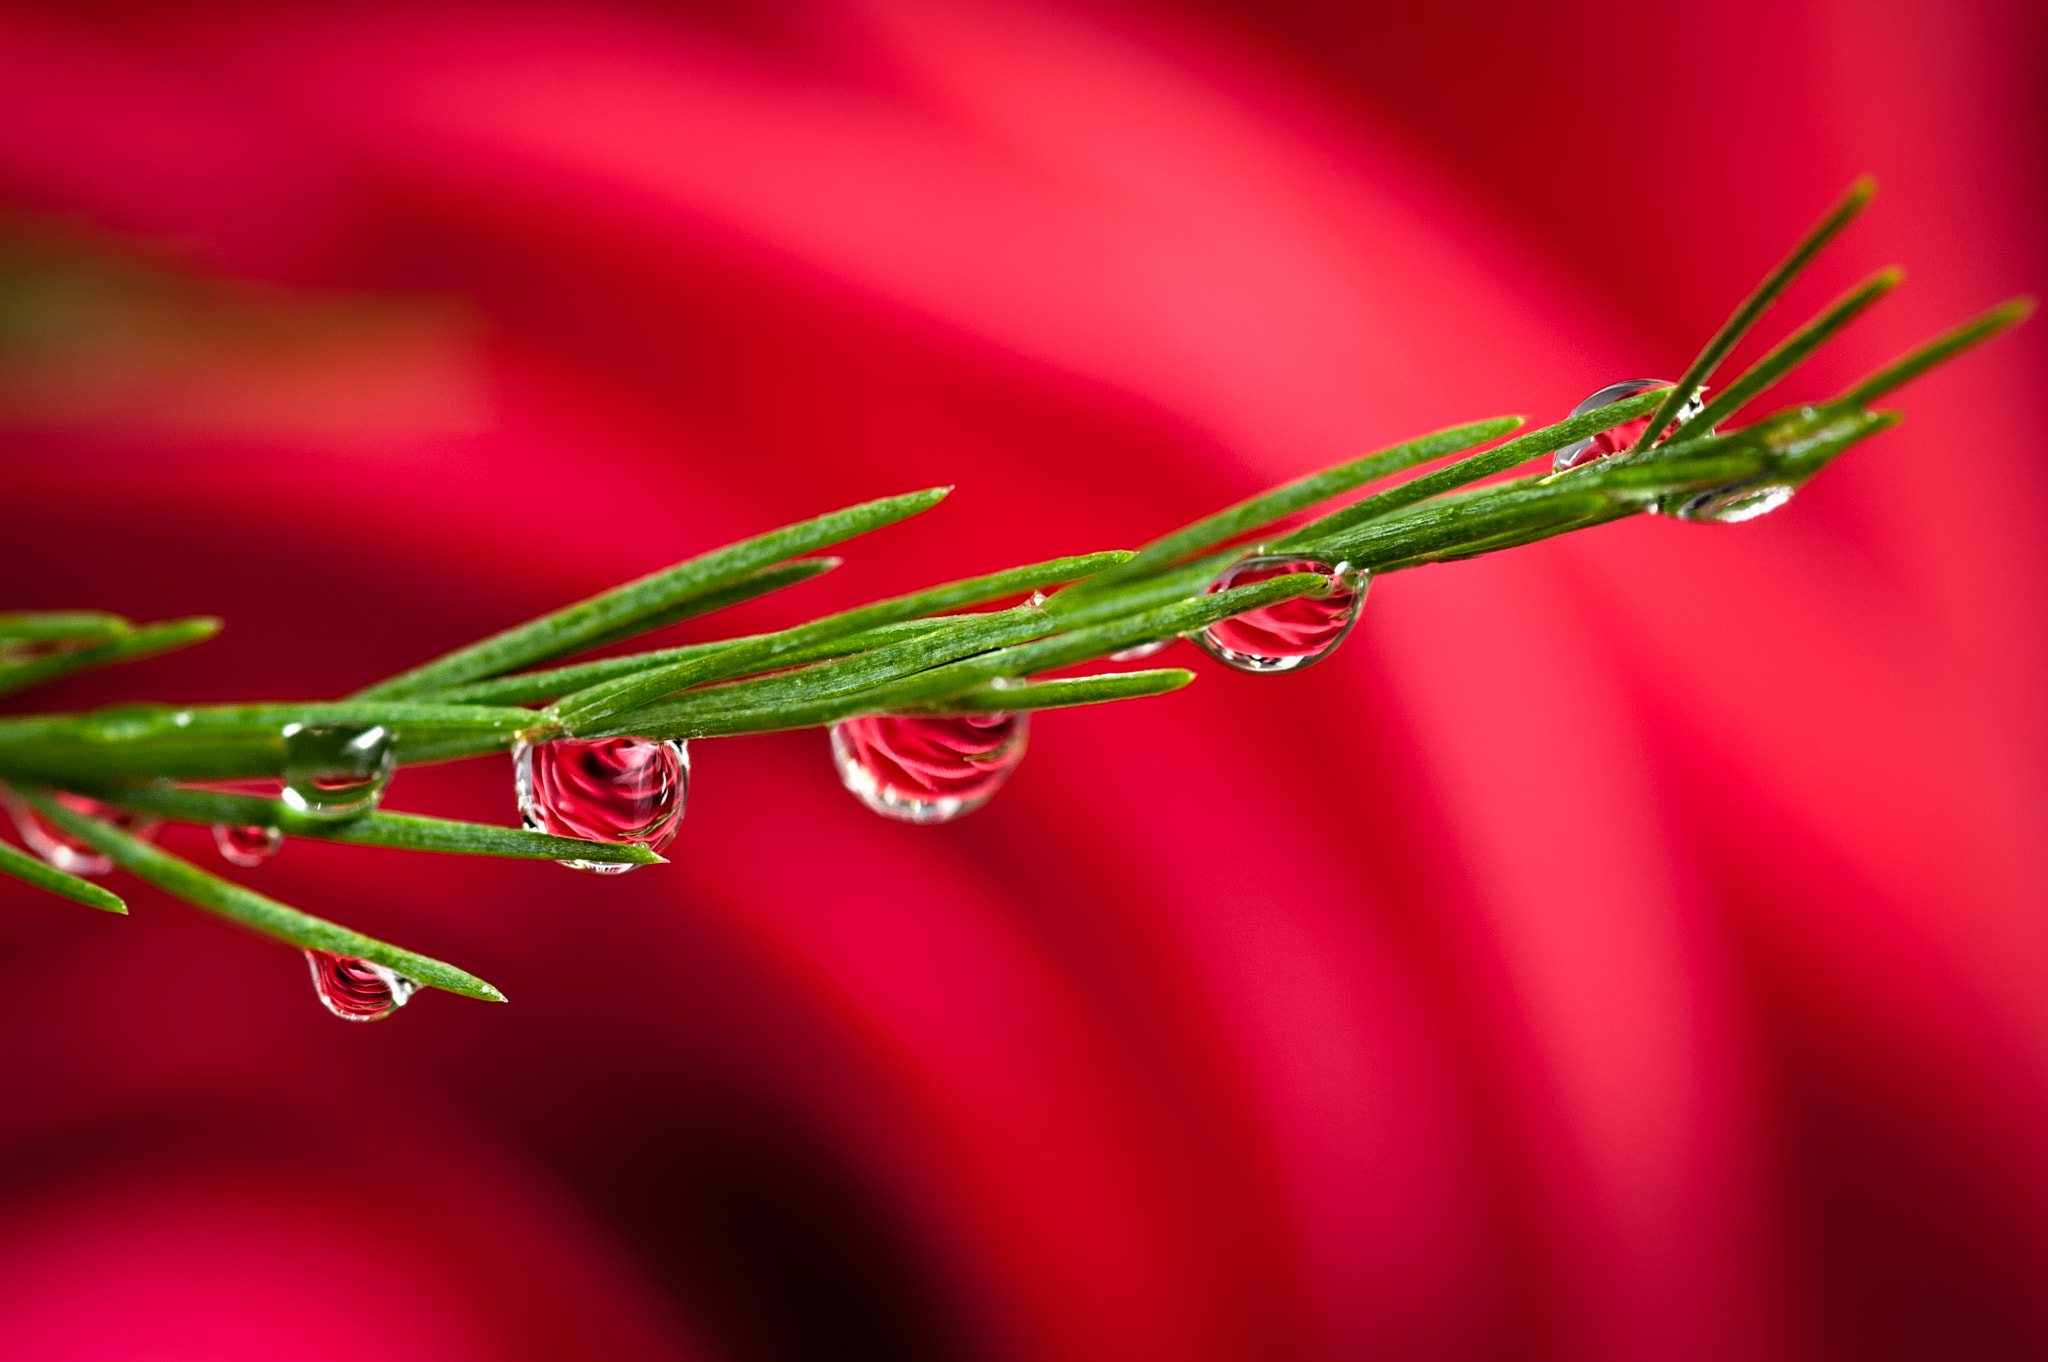 Photograph Rose Refraction by Karsten May on 500px